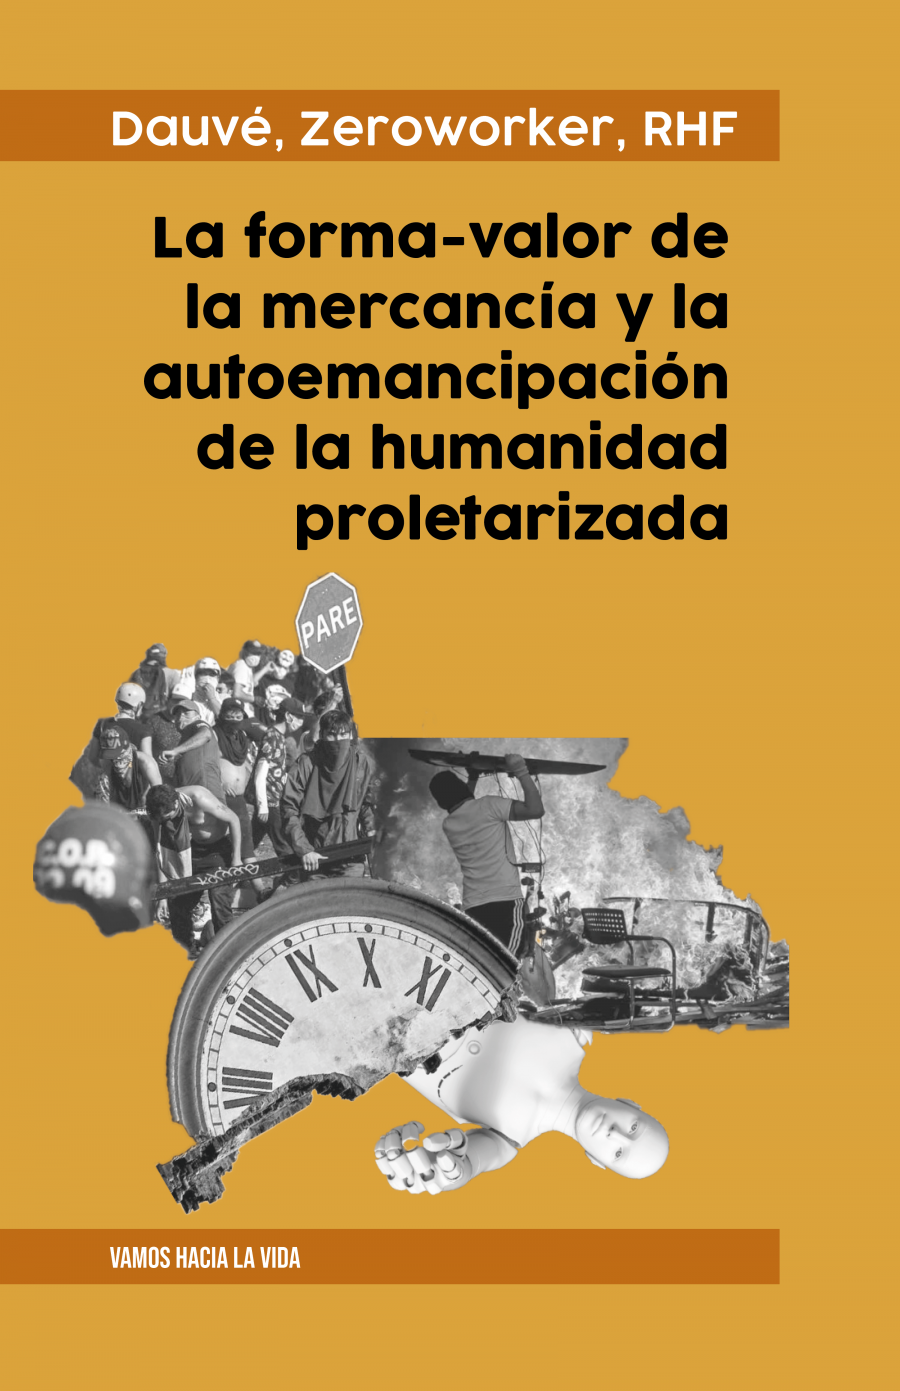 https://hacialavida.noblogs.org/files/2020/06/Portada-1-e1593471875541.png